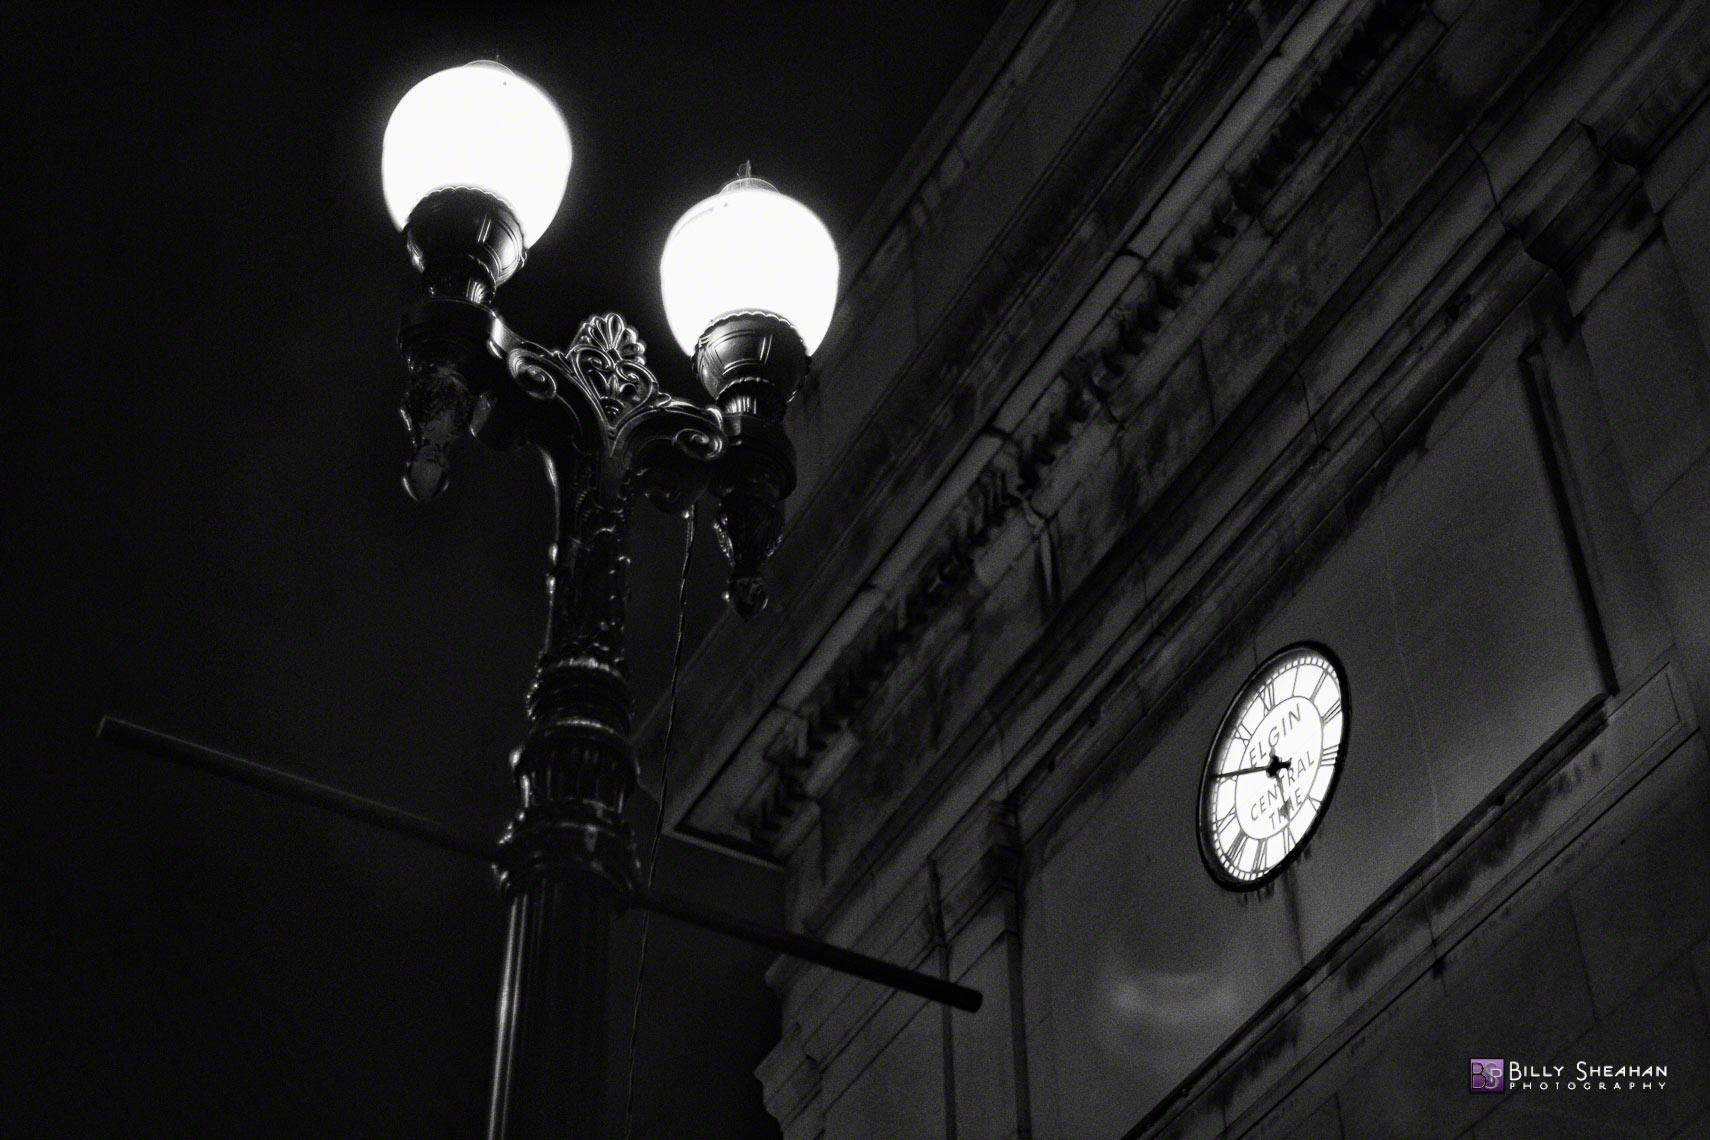 Union_Station_Chicago_Elgin_Clock_Chicago_28Oct2013_0007_BW_D